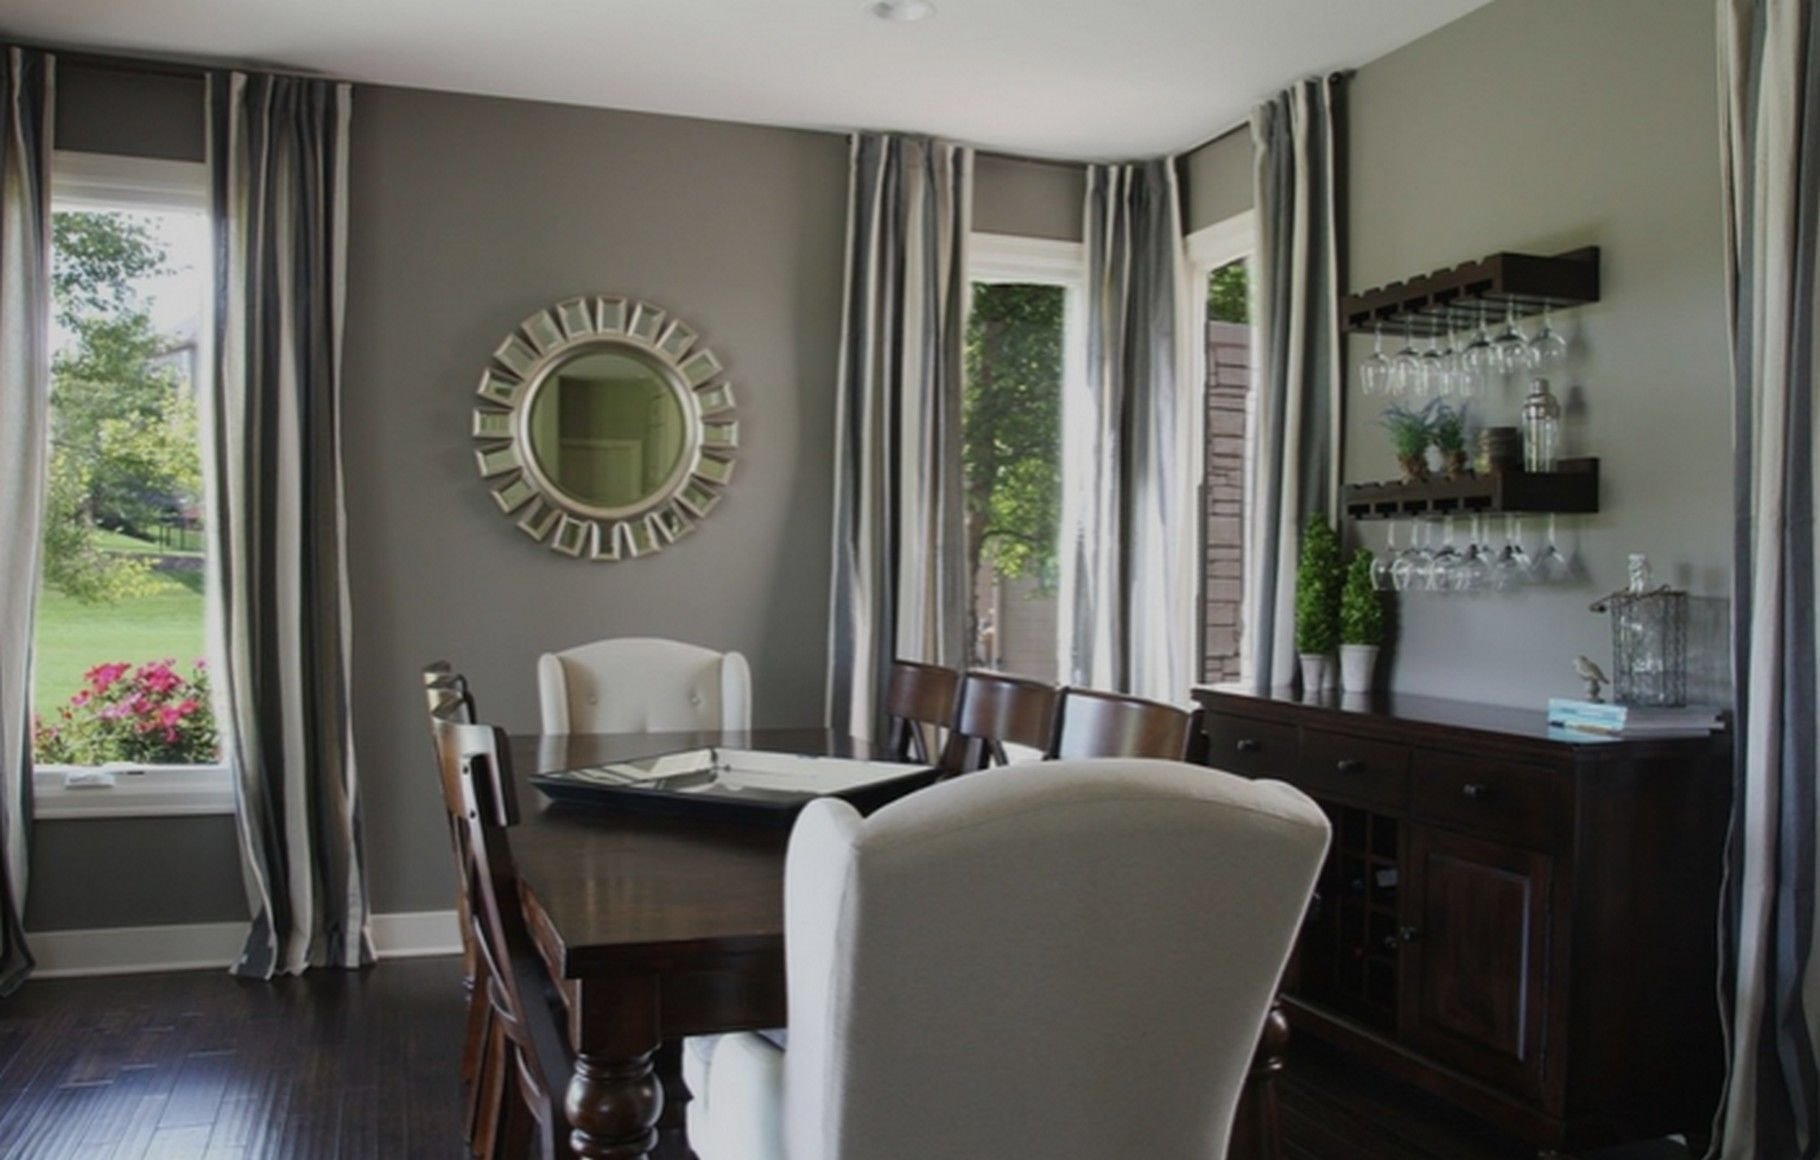 10 Fashionable Dining Room Decor Ideas Pictures dining room remodel ideas inspiration decor f w h p plus cool images